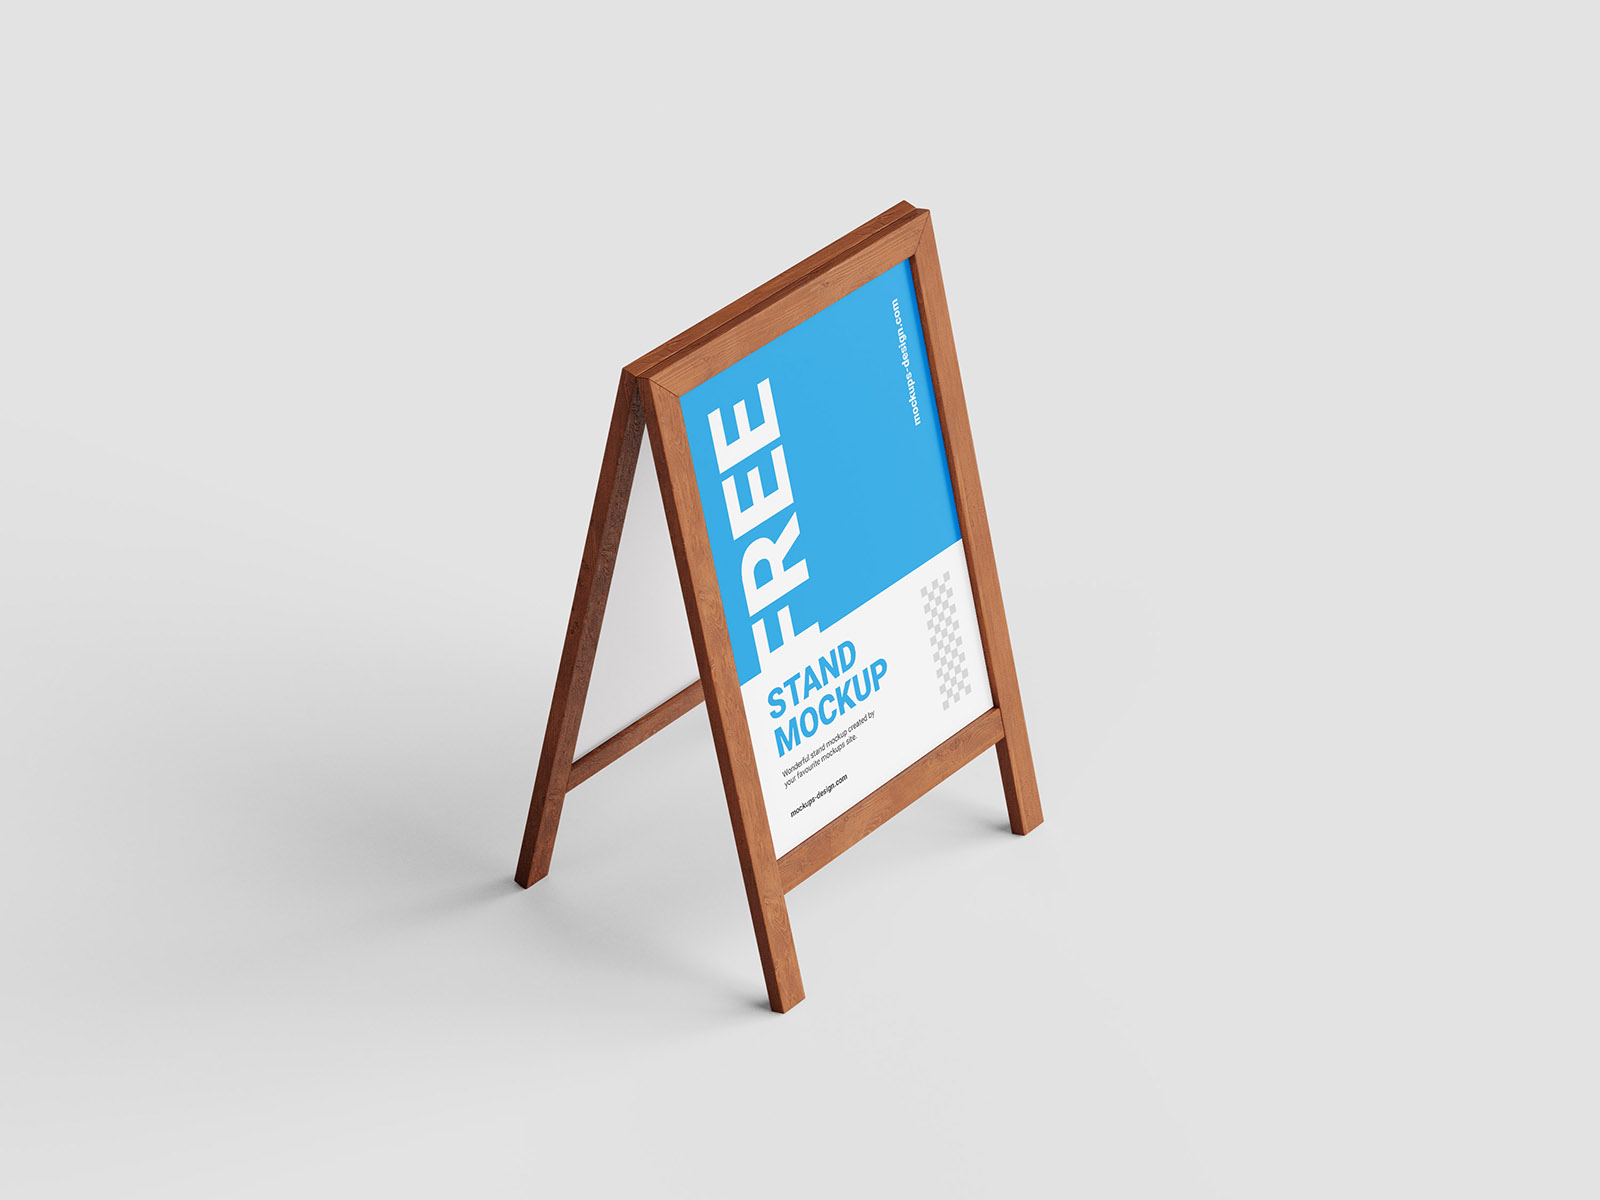 Free wooden stand mockup